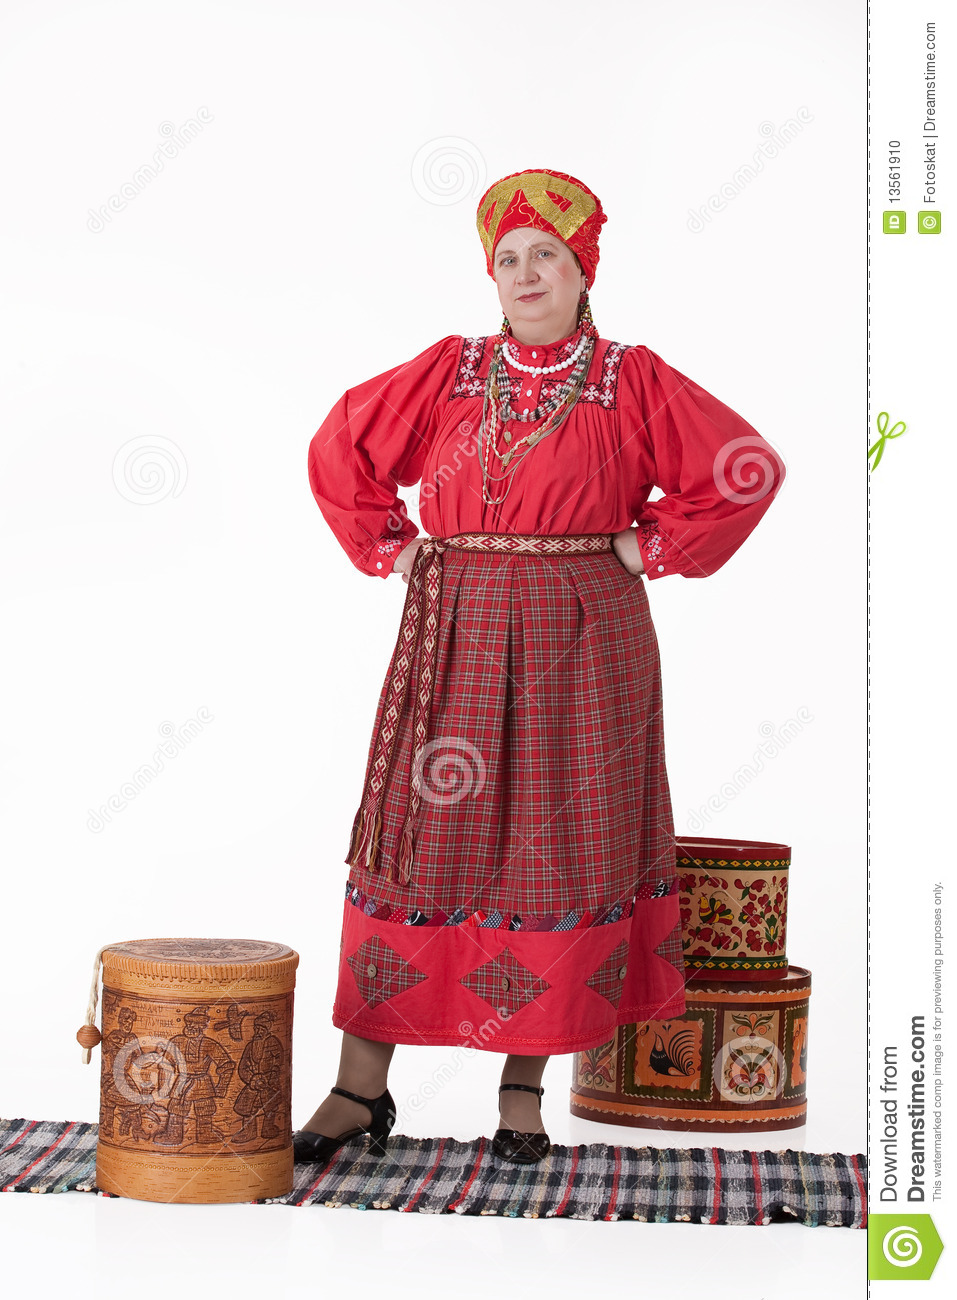 w in russian traditional clothing stock photo image  w in russian traditional clothing